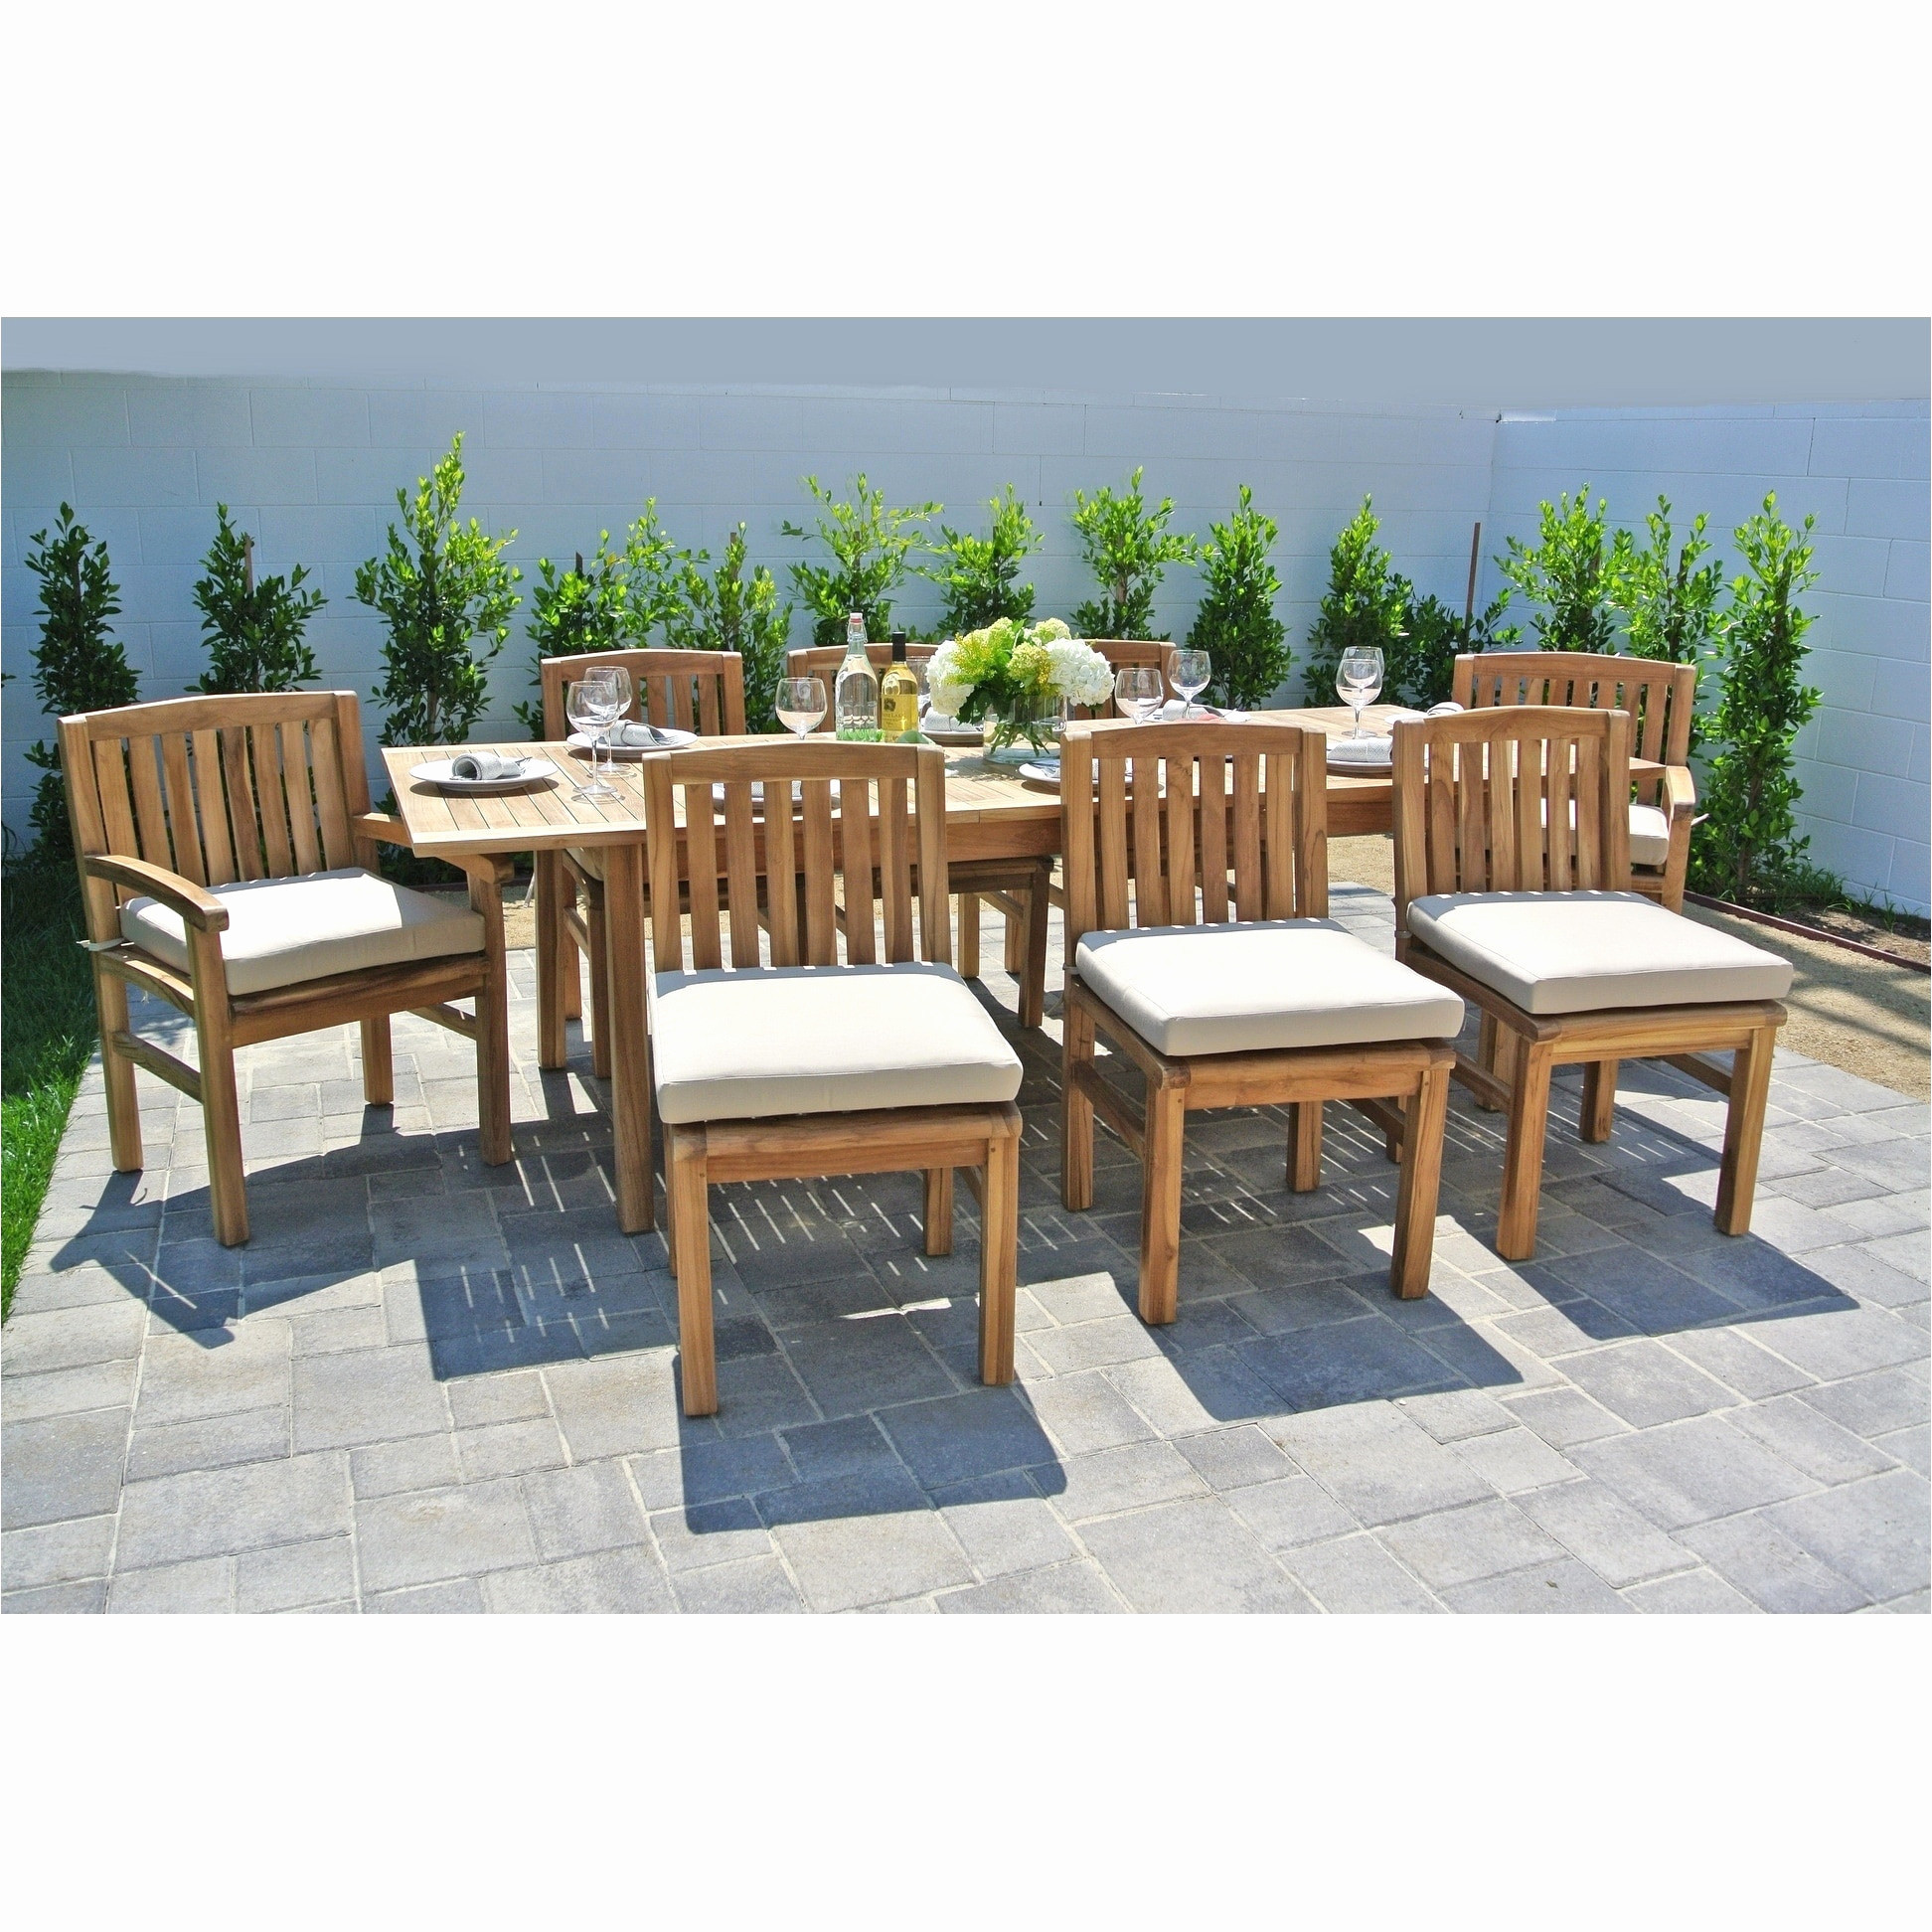 lowes hardwood flooring on sale of lowes outdoor patio furniture with regard to patio table sets fresh patio furniture dining sets 22 patio box best wicker outdoor sofa 0d